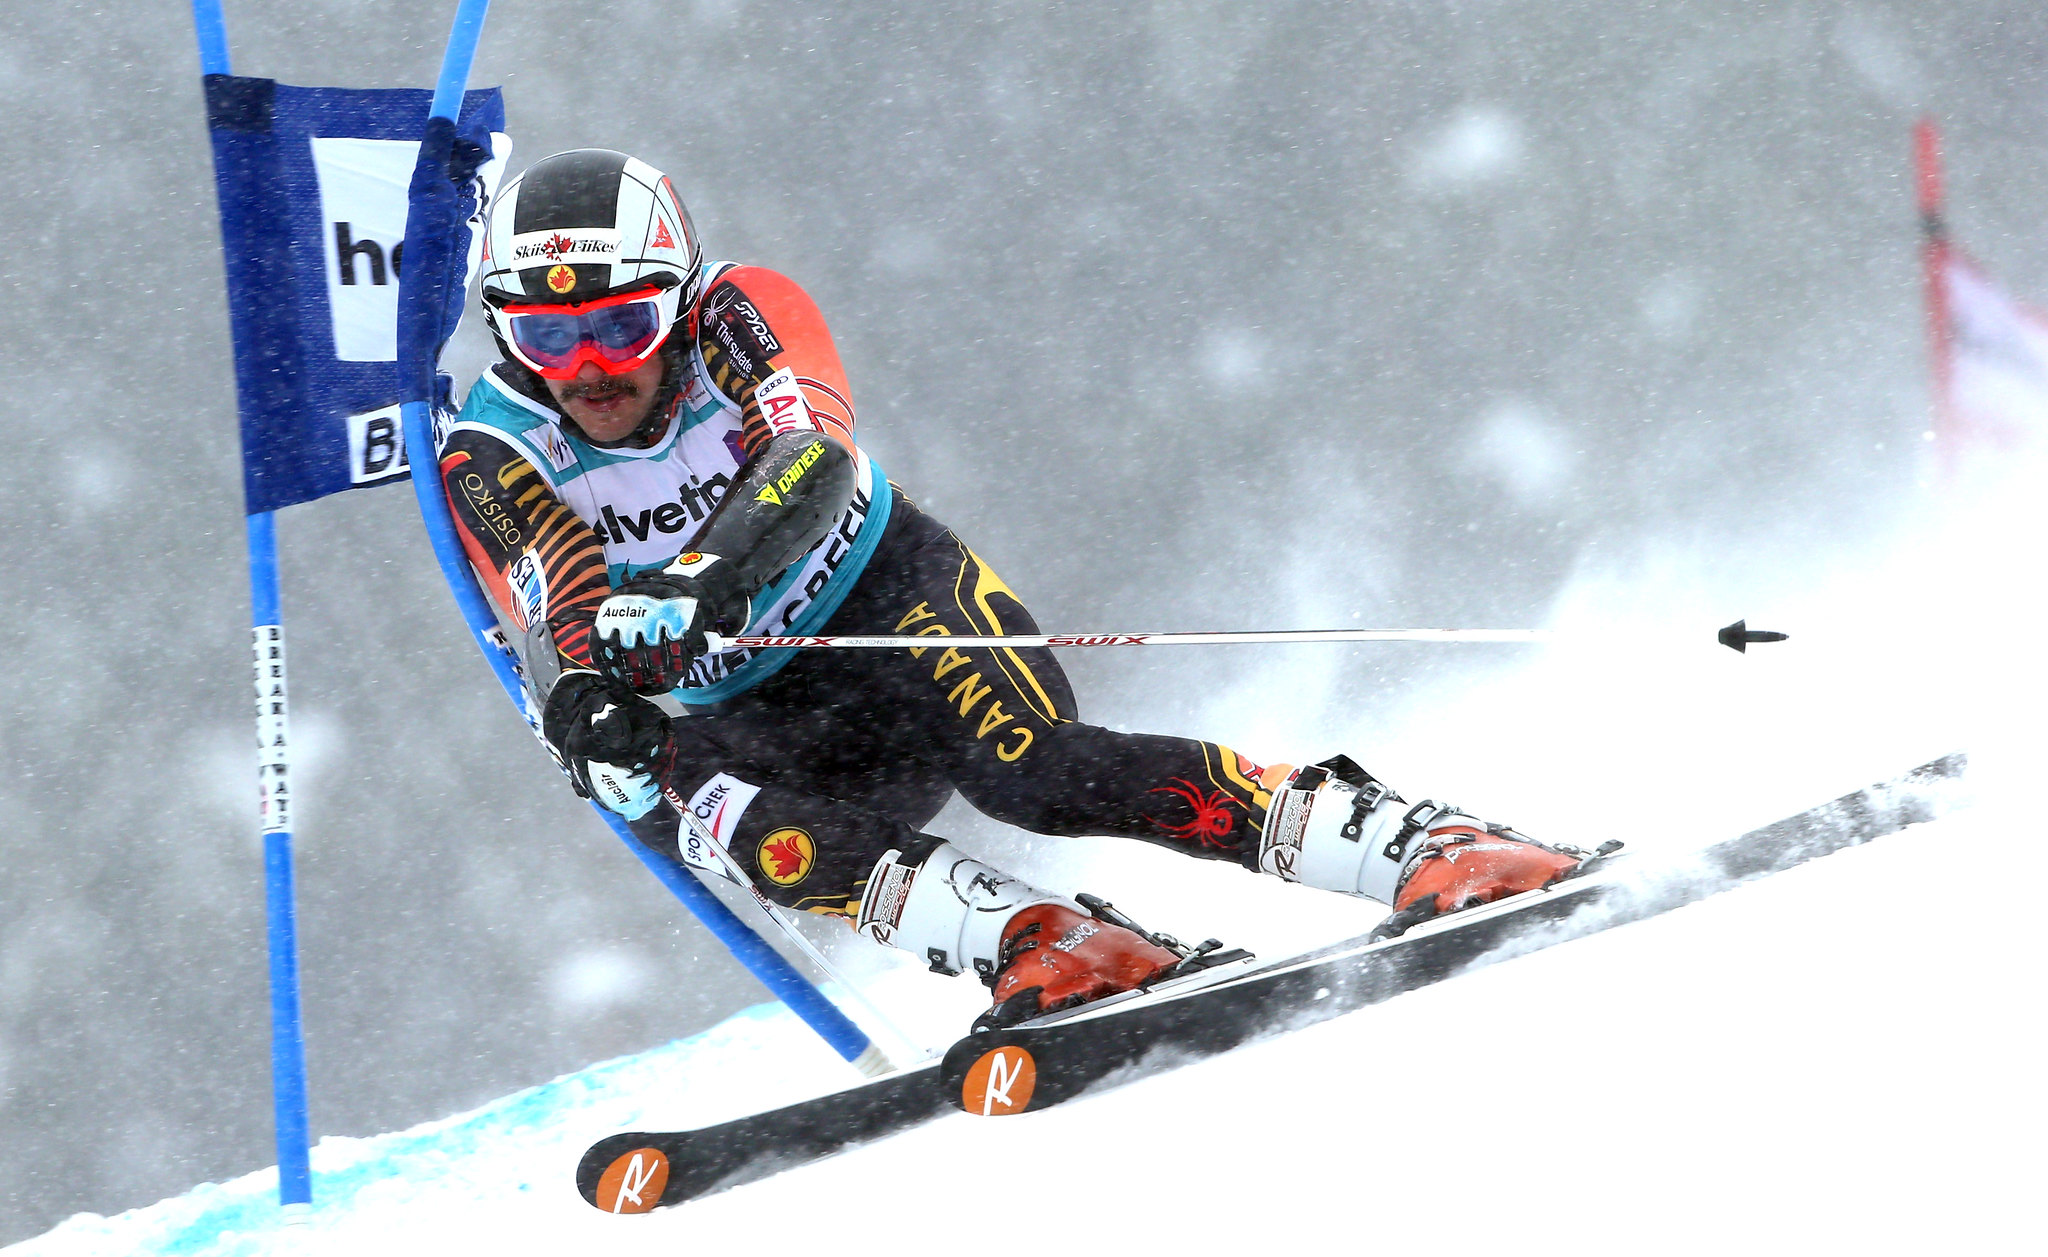 Philip Brown in action at the FIS Alpine World Cup in Beaver Creek, USA